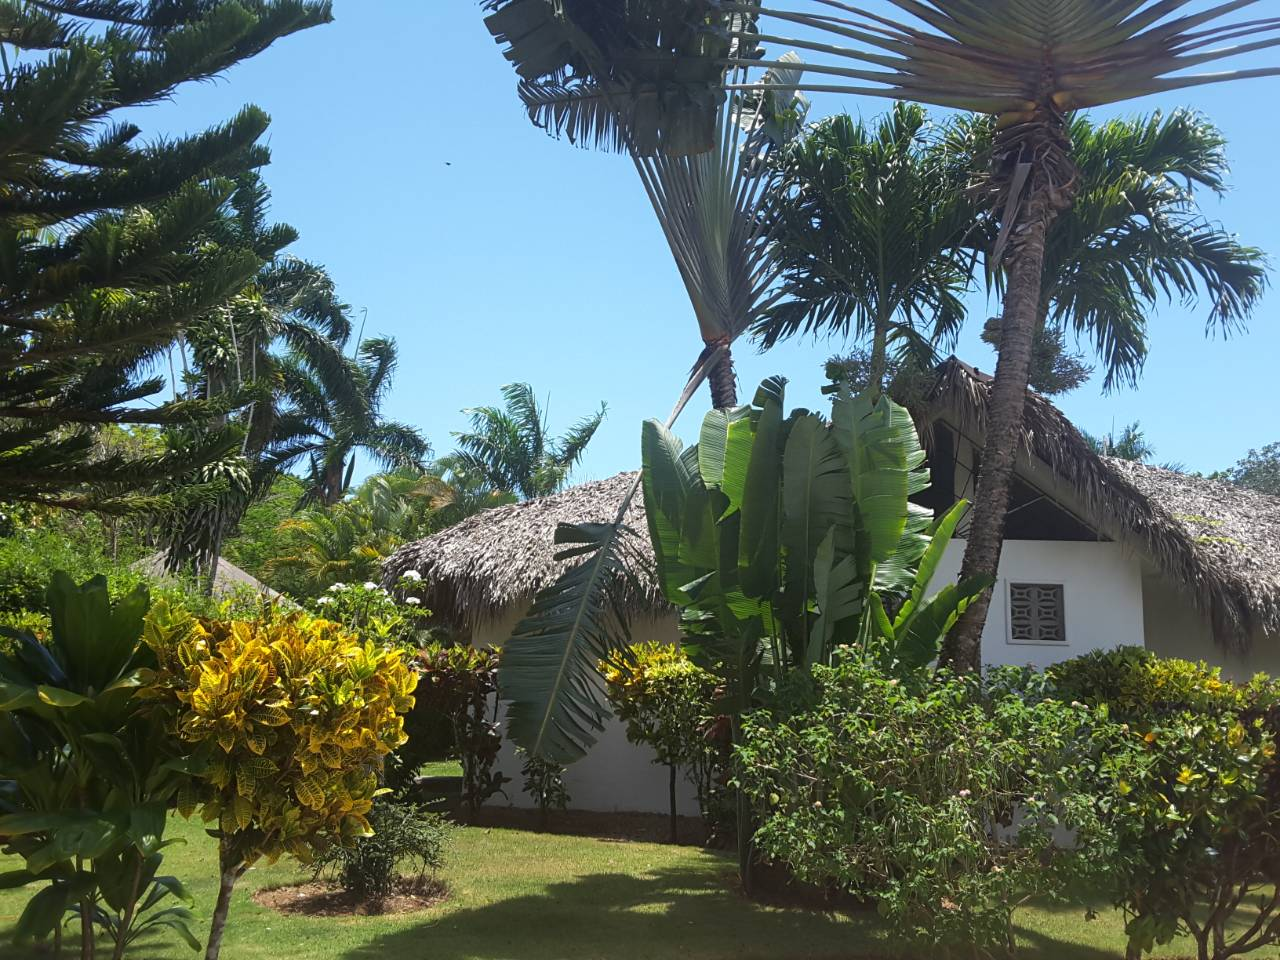 Villa for sale in Las Terrenas perfect for bed and breakfast9.jpeg